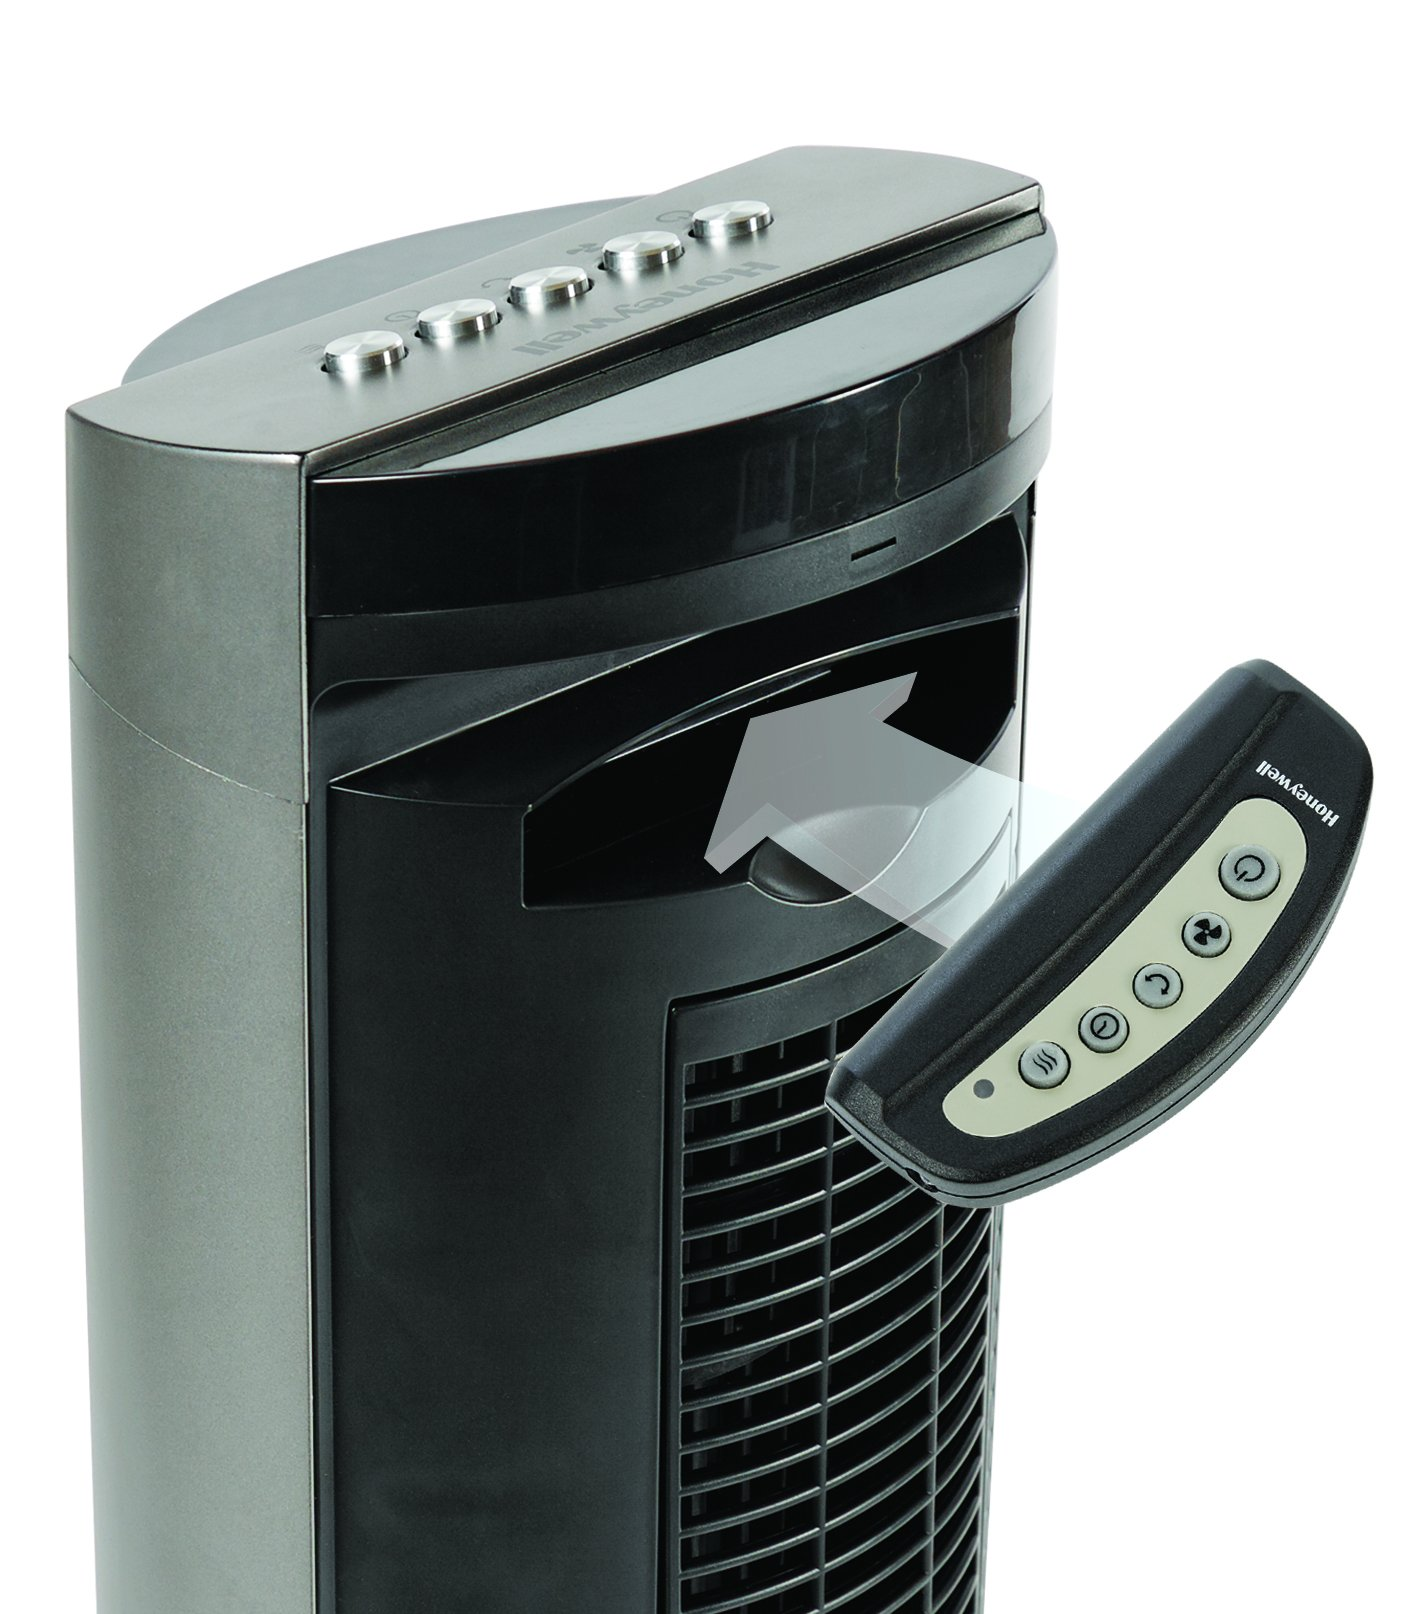 71x5t8F91uL - HONEYWELL PREMIUM TOWER FAN WITH REMOTE CONTROL